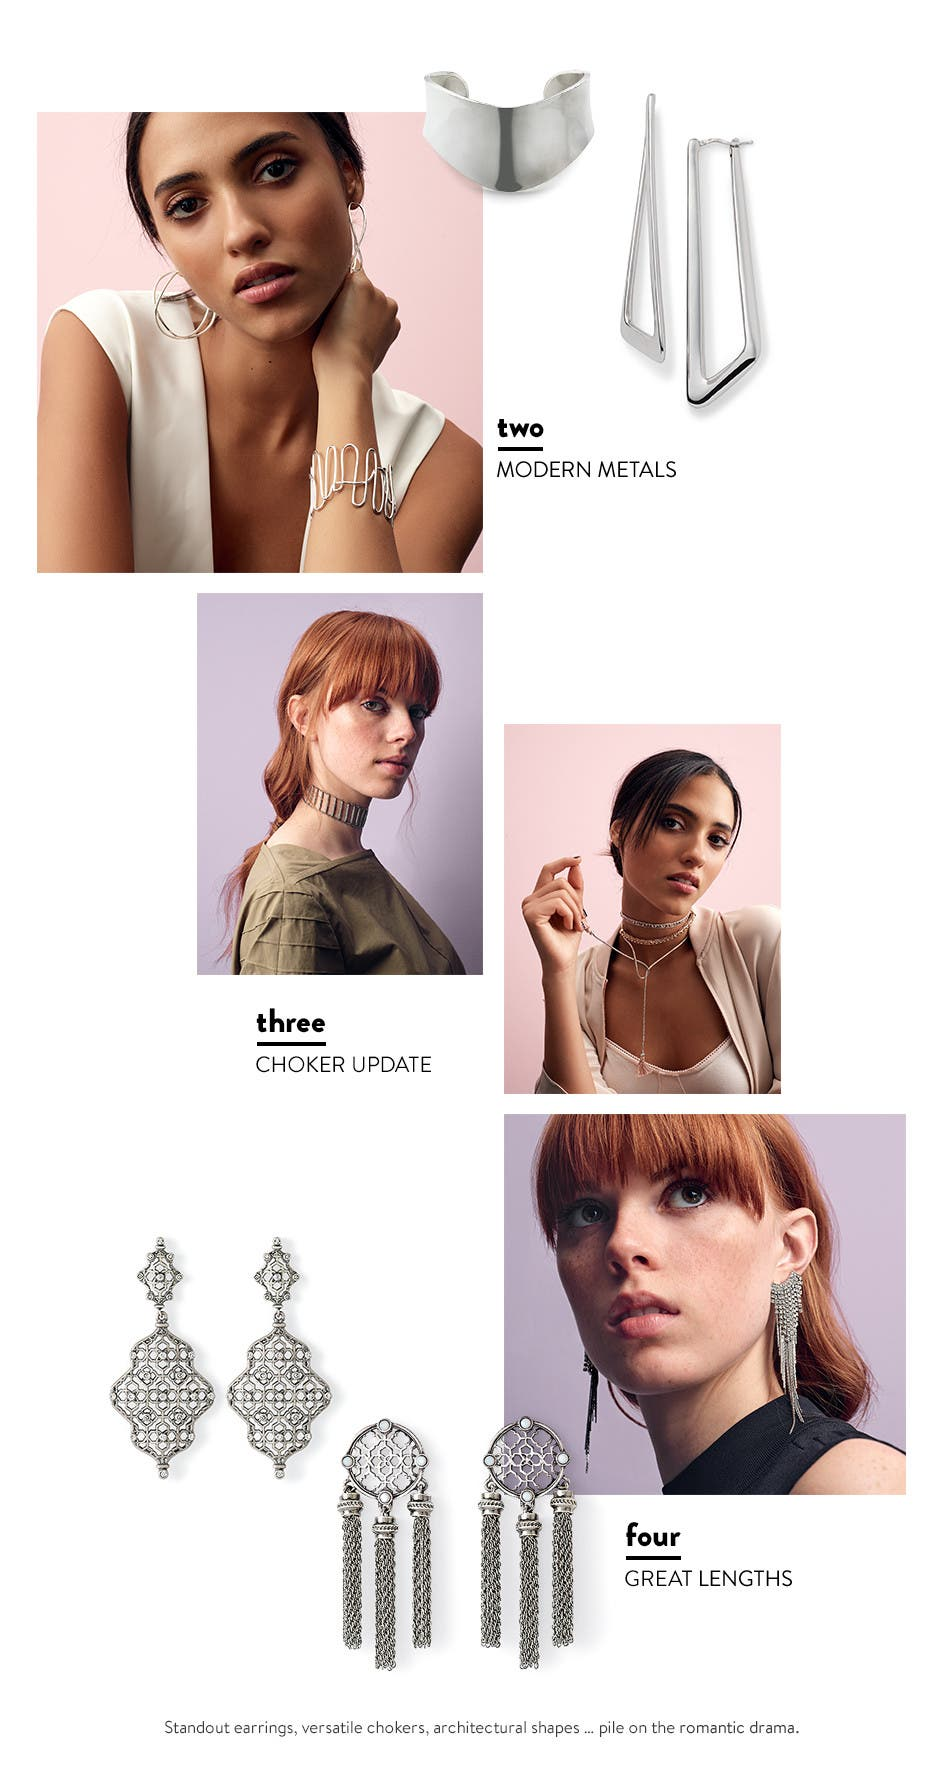 Modern metals: jewelry for spring.